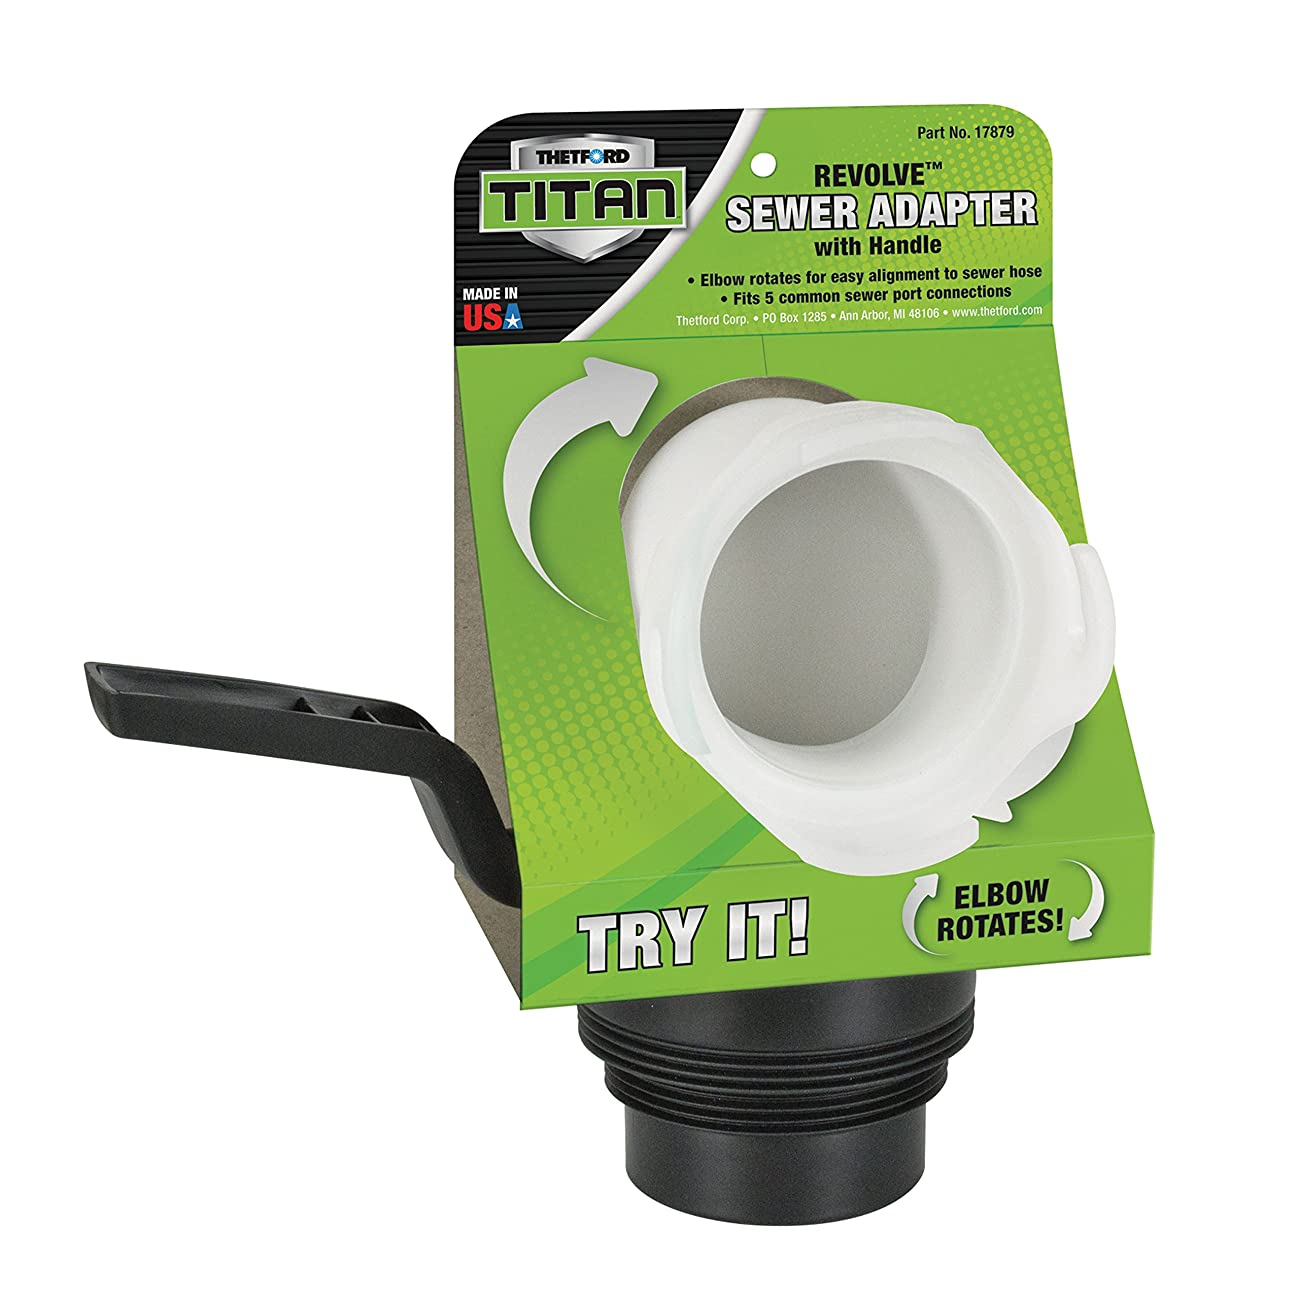 Thetford 17879 Titan Revolve Sewer Adapter with Handle